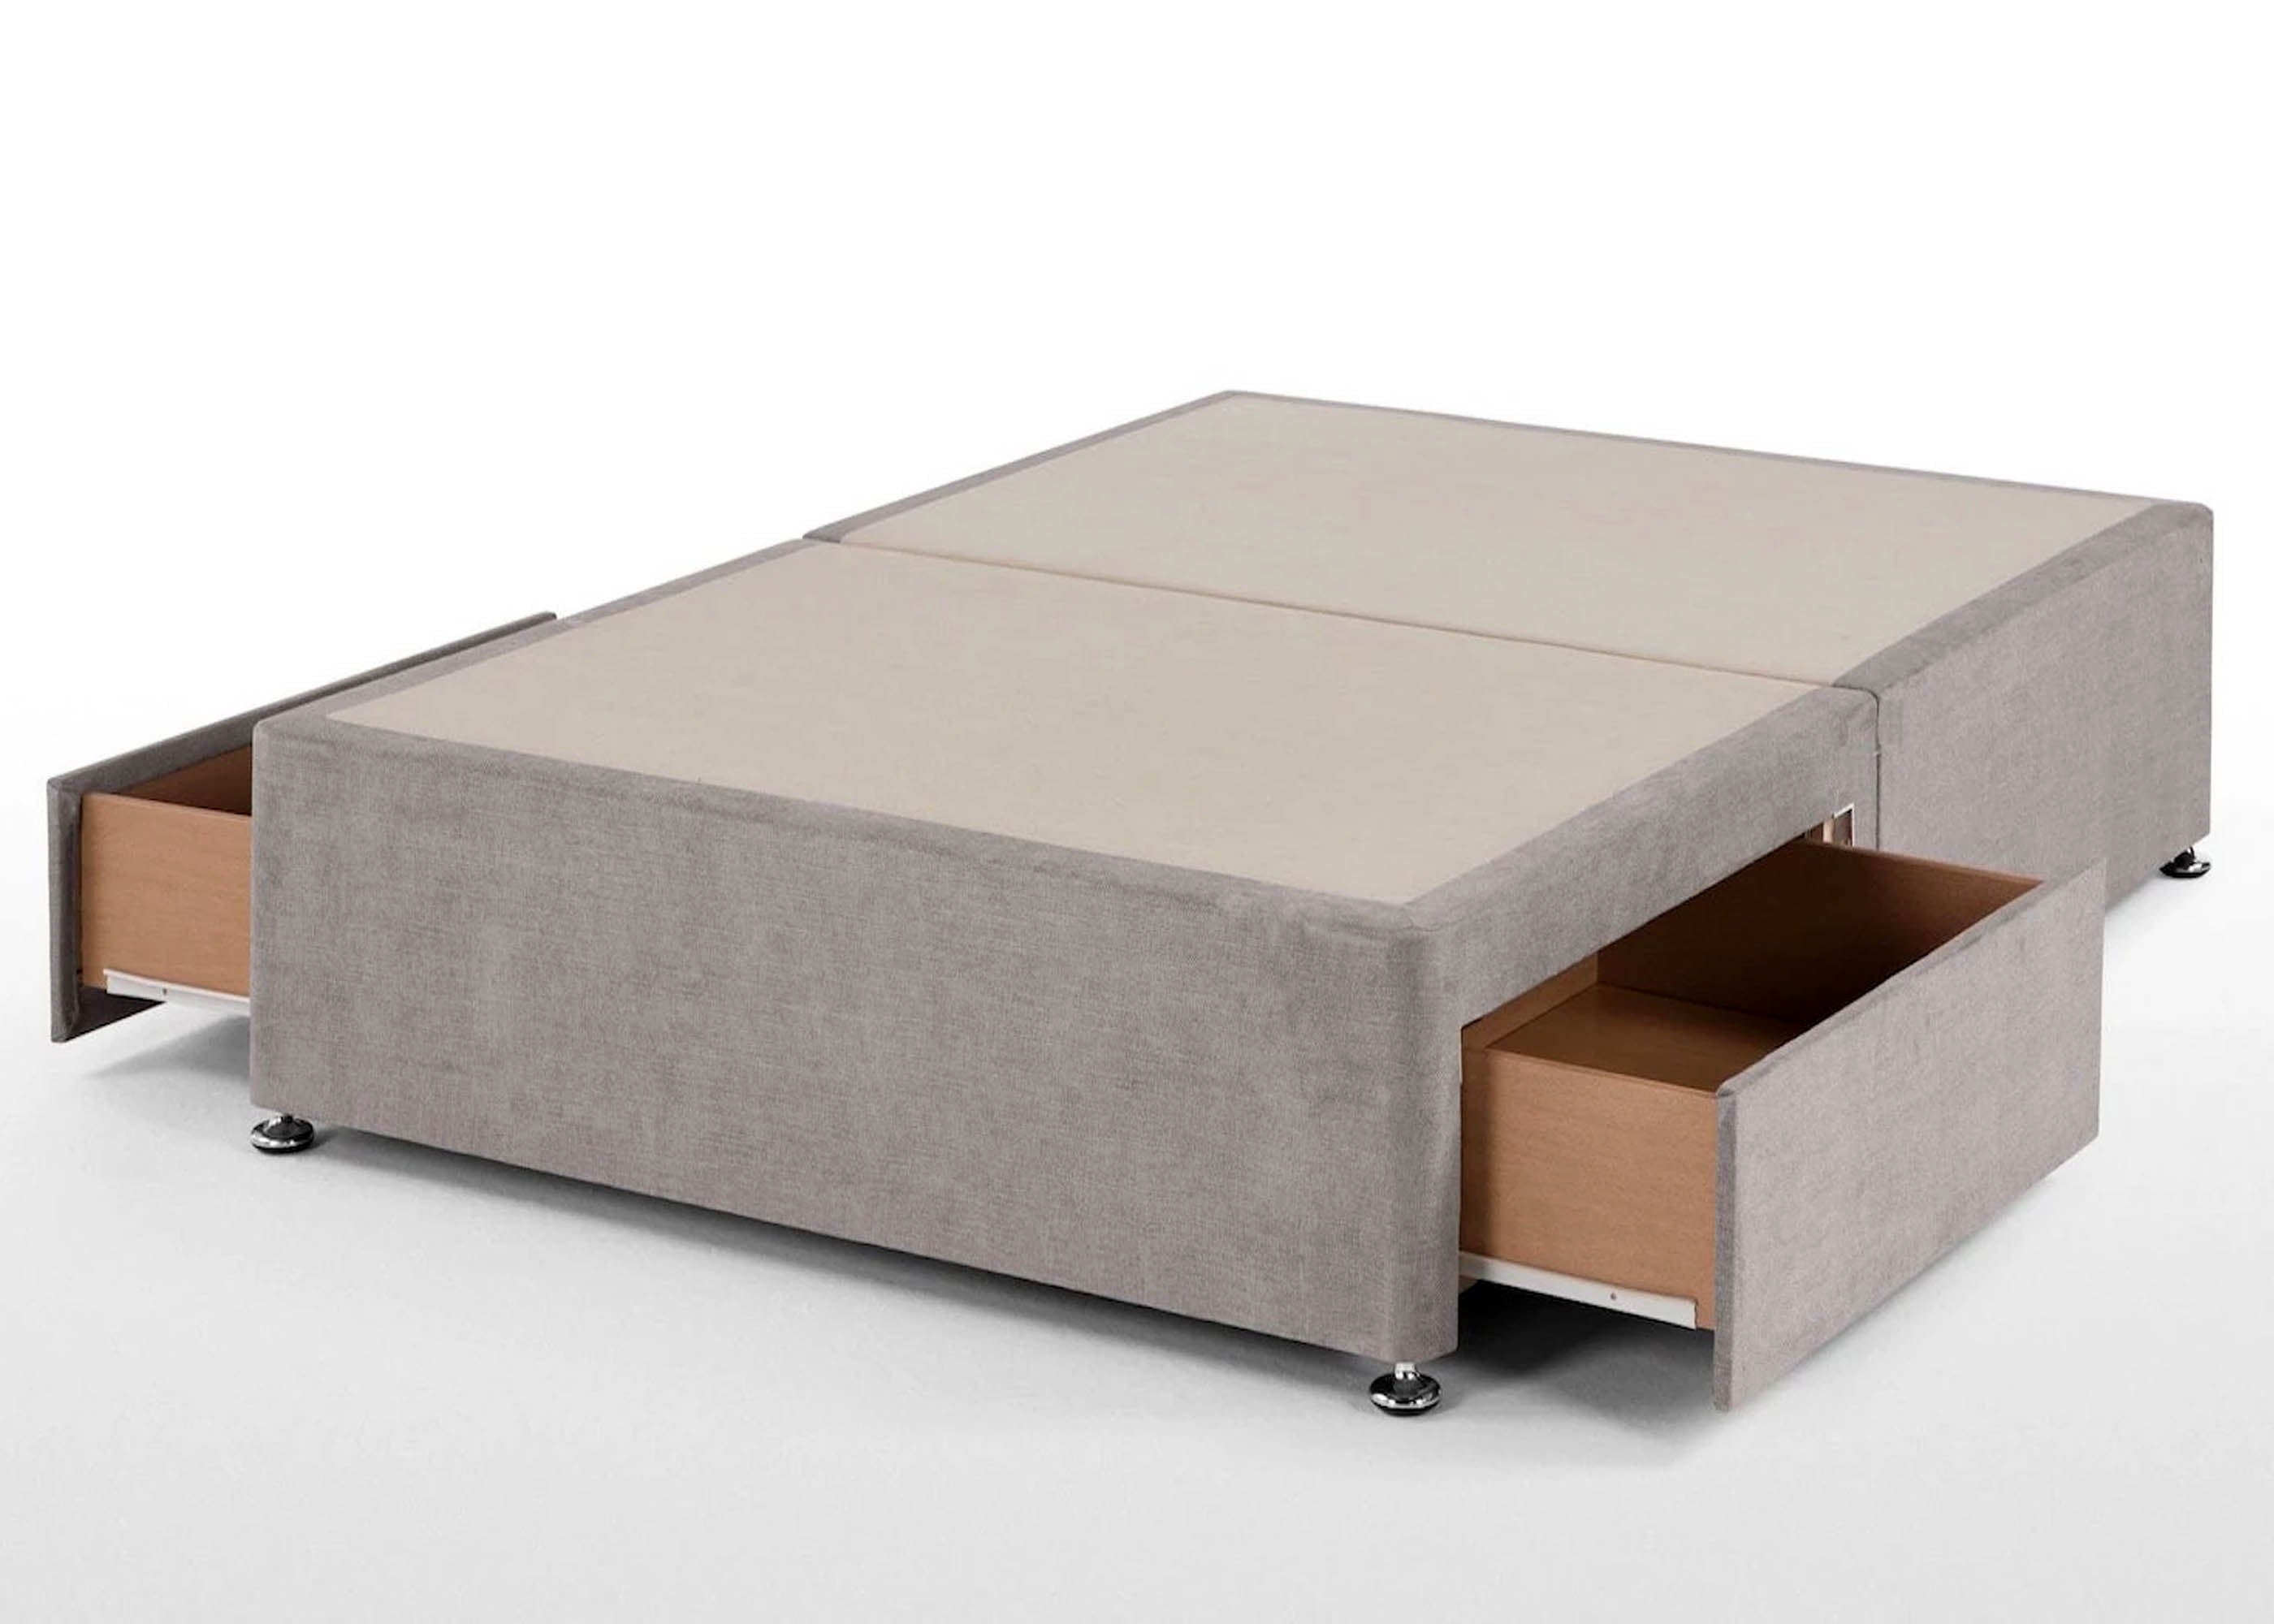 Reinforced divan base suitable for large people for Cheap single divan bed base